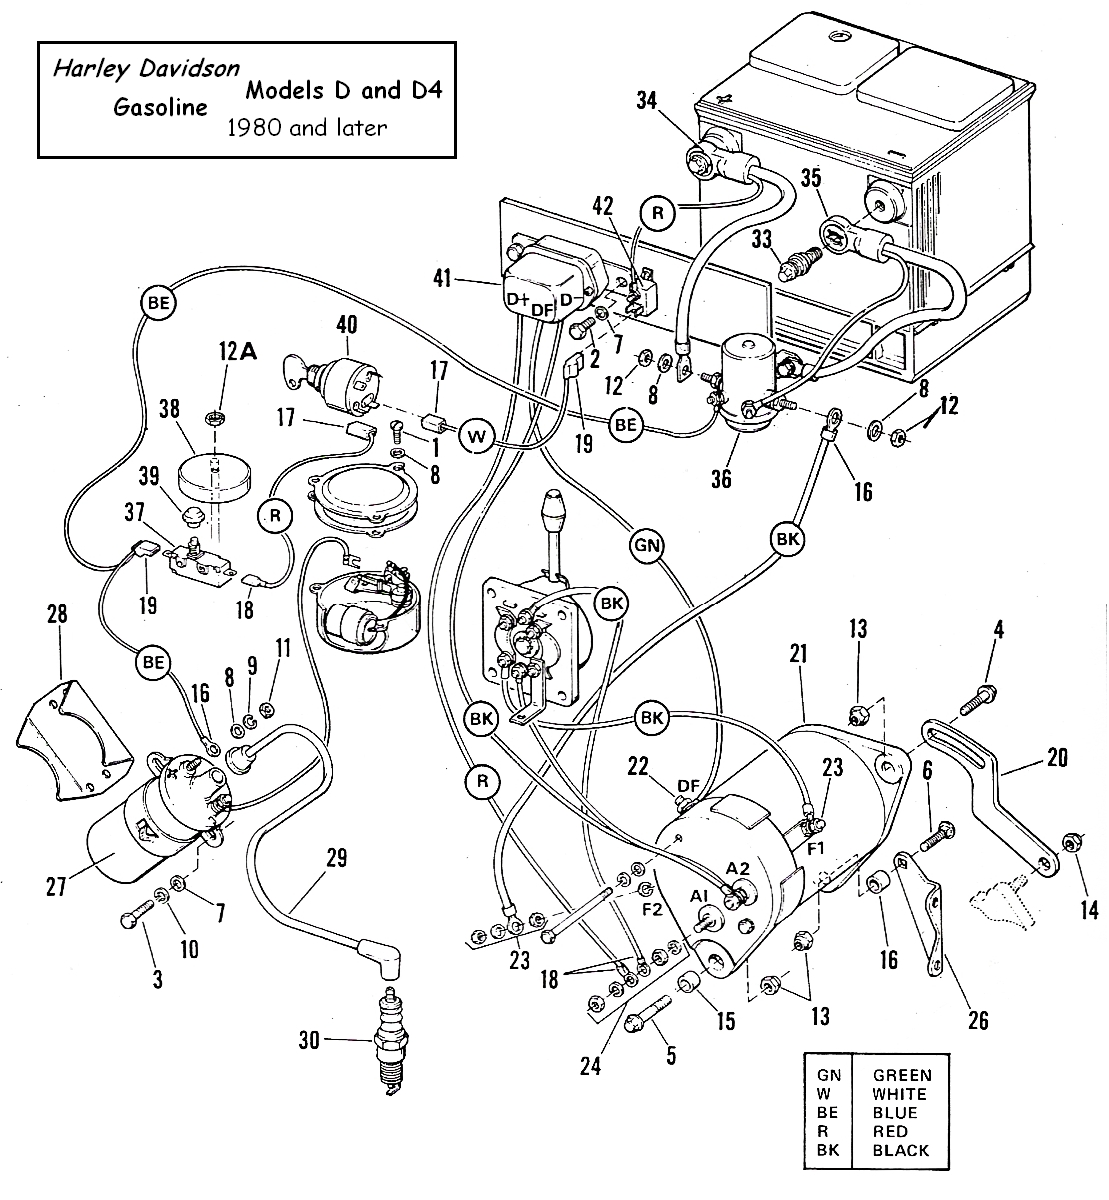 Harley Davidson Electric Golf Cart on voltage regulator wiring diagram motorcycle